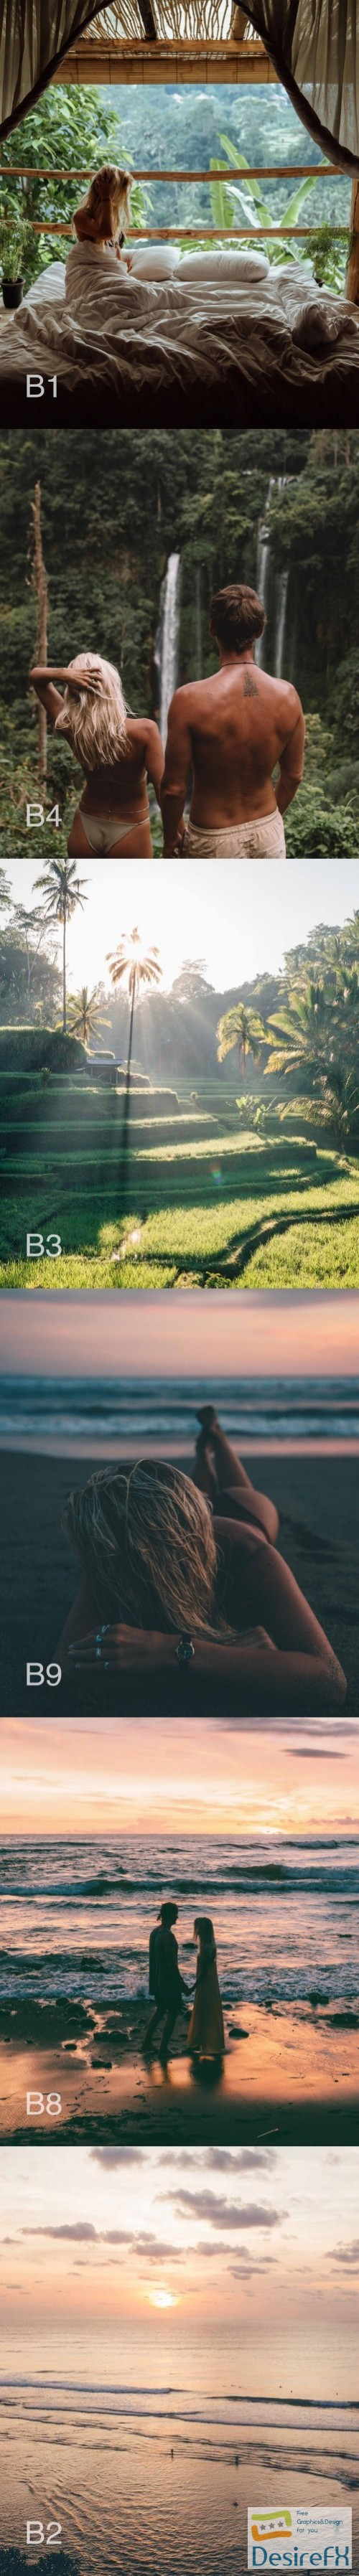 DOYOUTRAVEL X GYPSEALUST Presets - Bali Collection